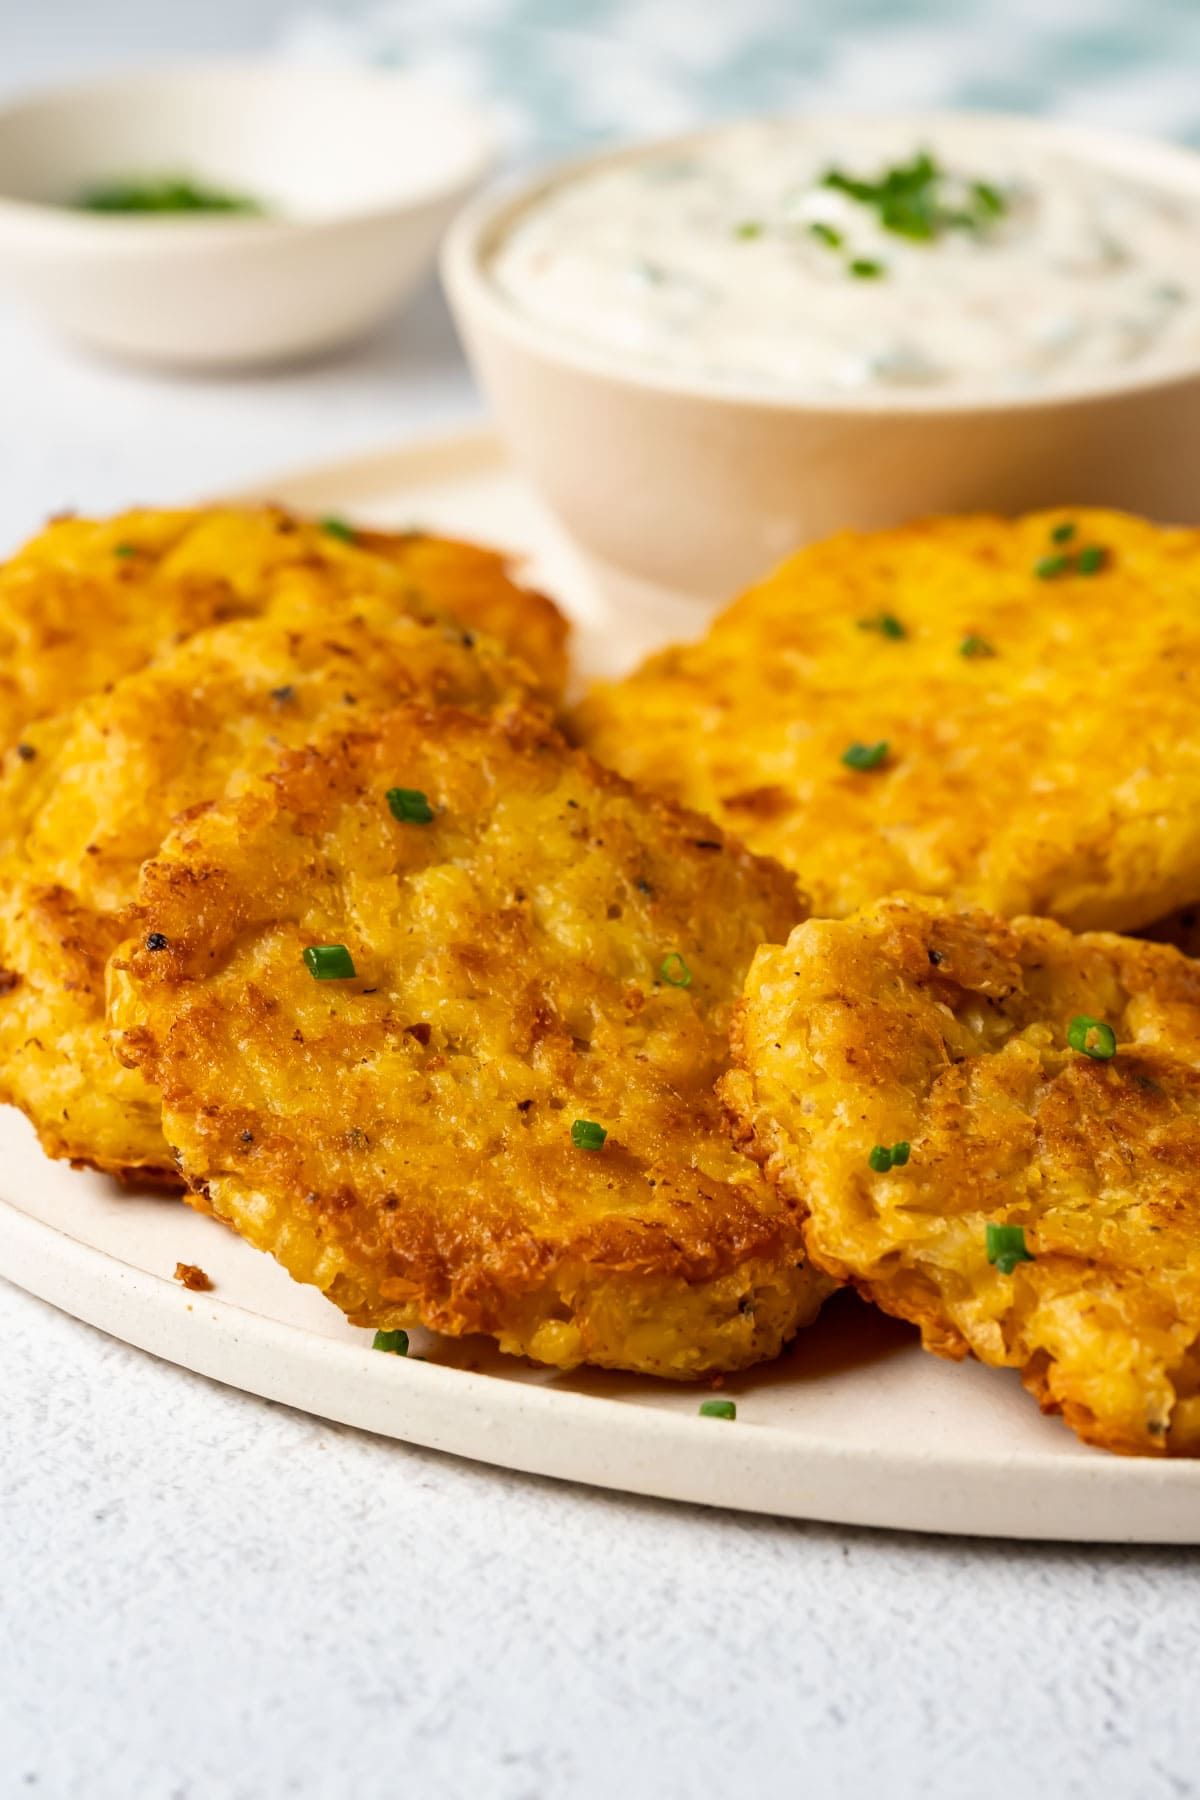 Potato fritters on a white plate with garlic dip.